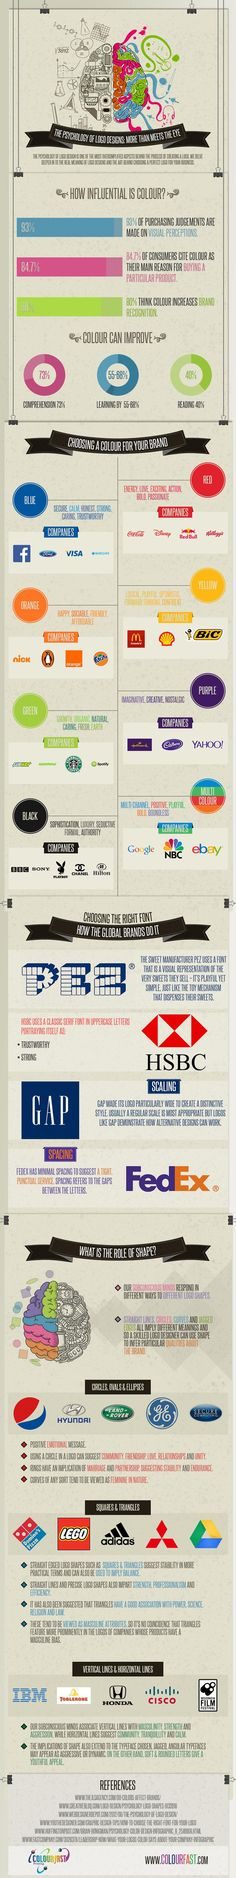 The Psychology Of Logo Designs: More Than Meets The Eye